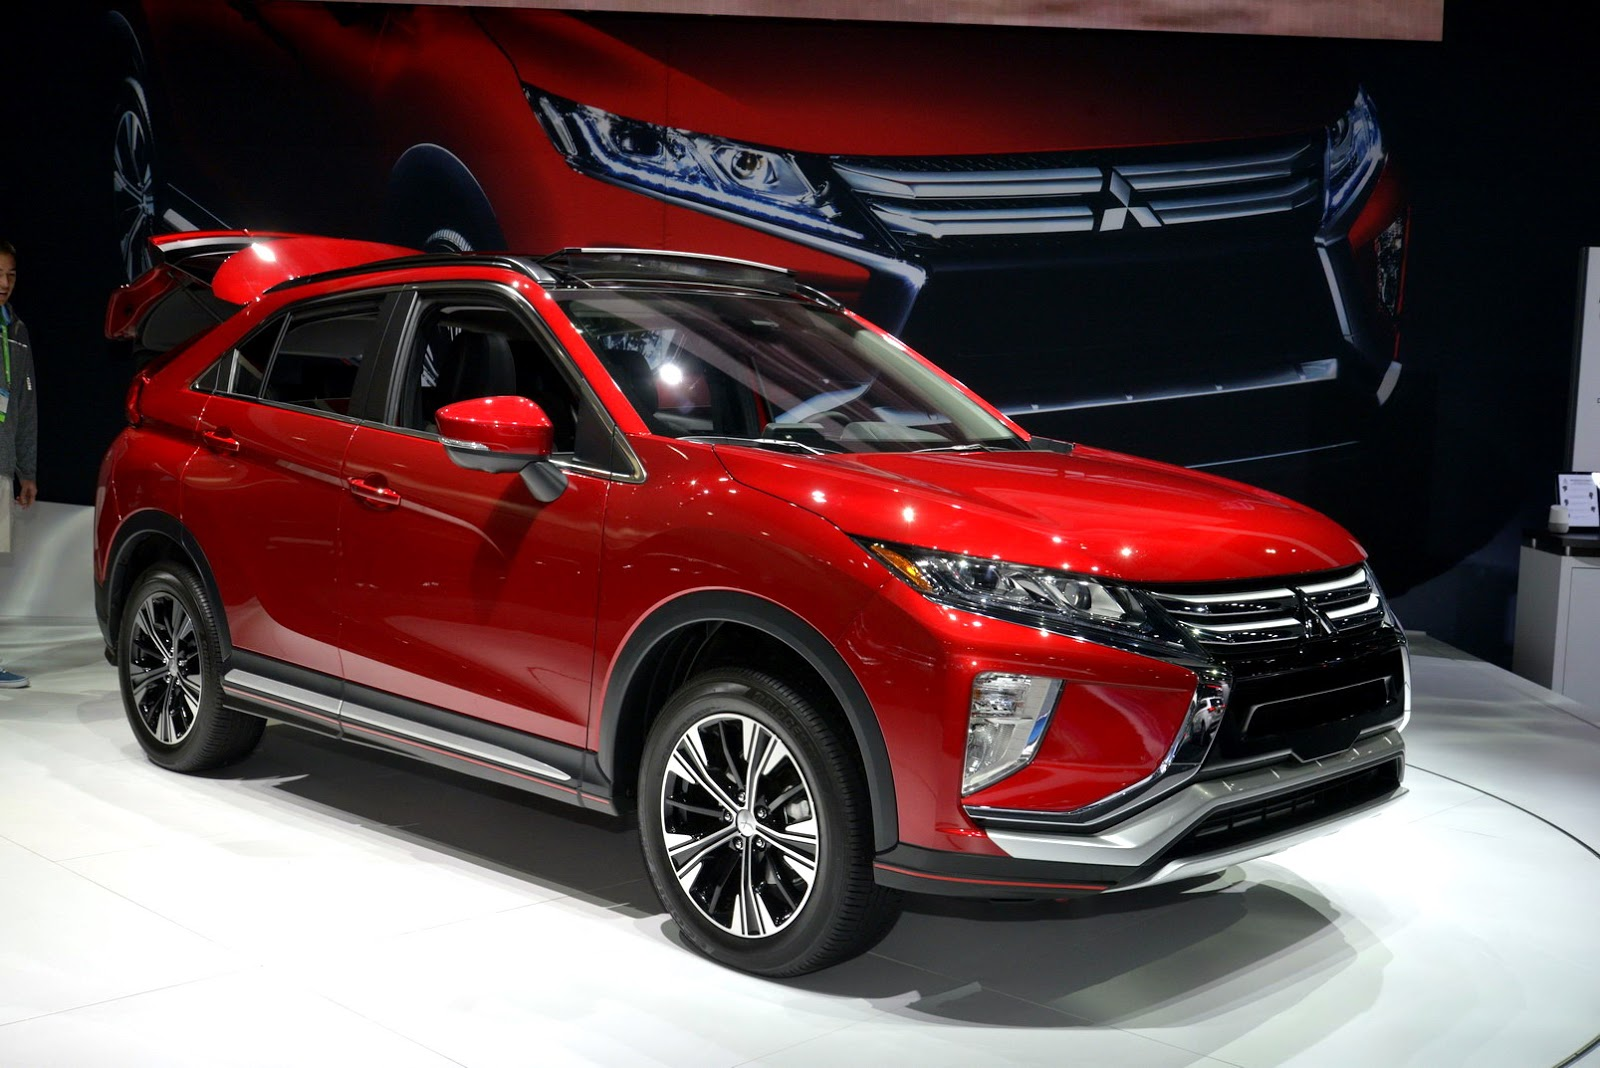 Mercedes Roadside Assistance >> New Mitsubishi Eclipse Cross Lands In LA With A $23,295 Price Tag | Carscoops